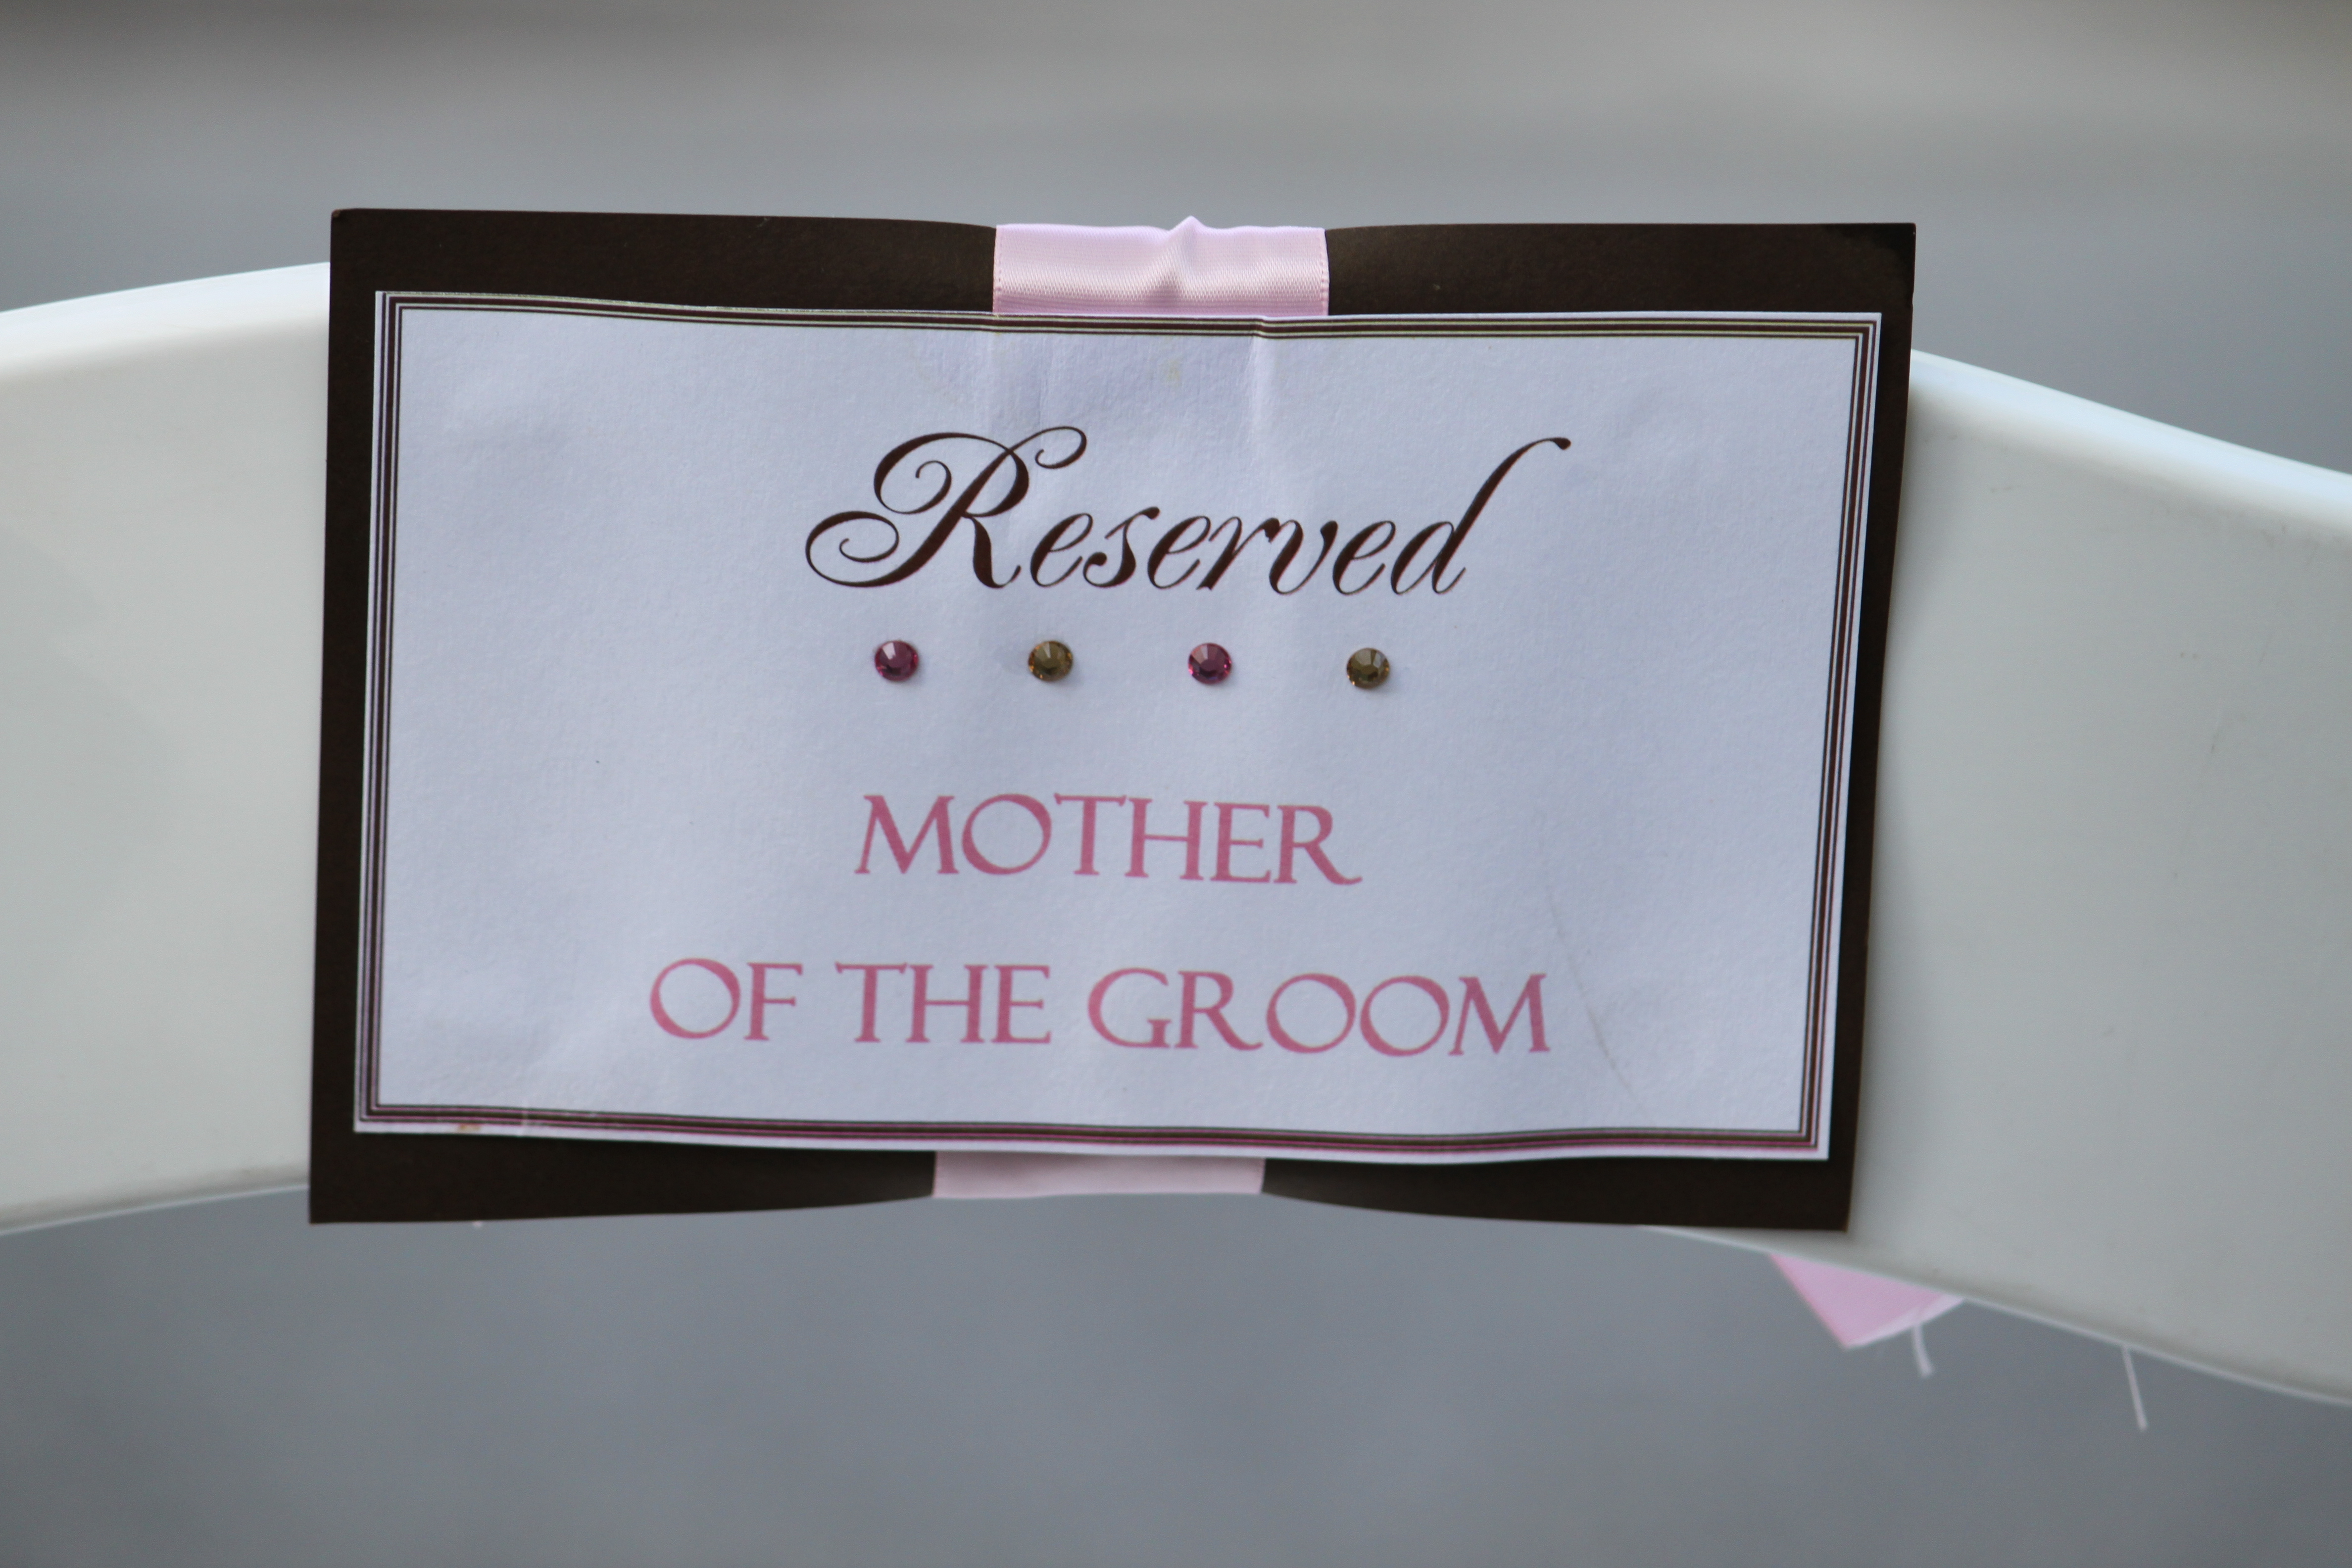 Ceremony, Inspiration, Flowers & Decor, pink, brown, Board, Chair, Tags, Reserved